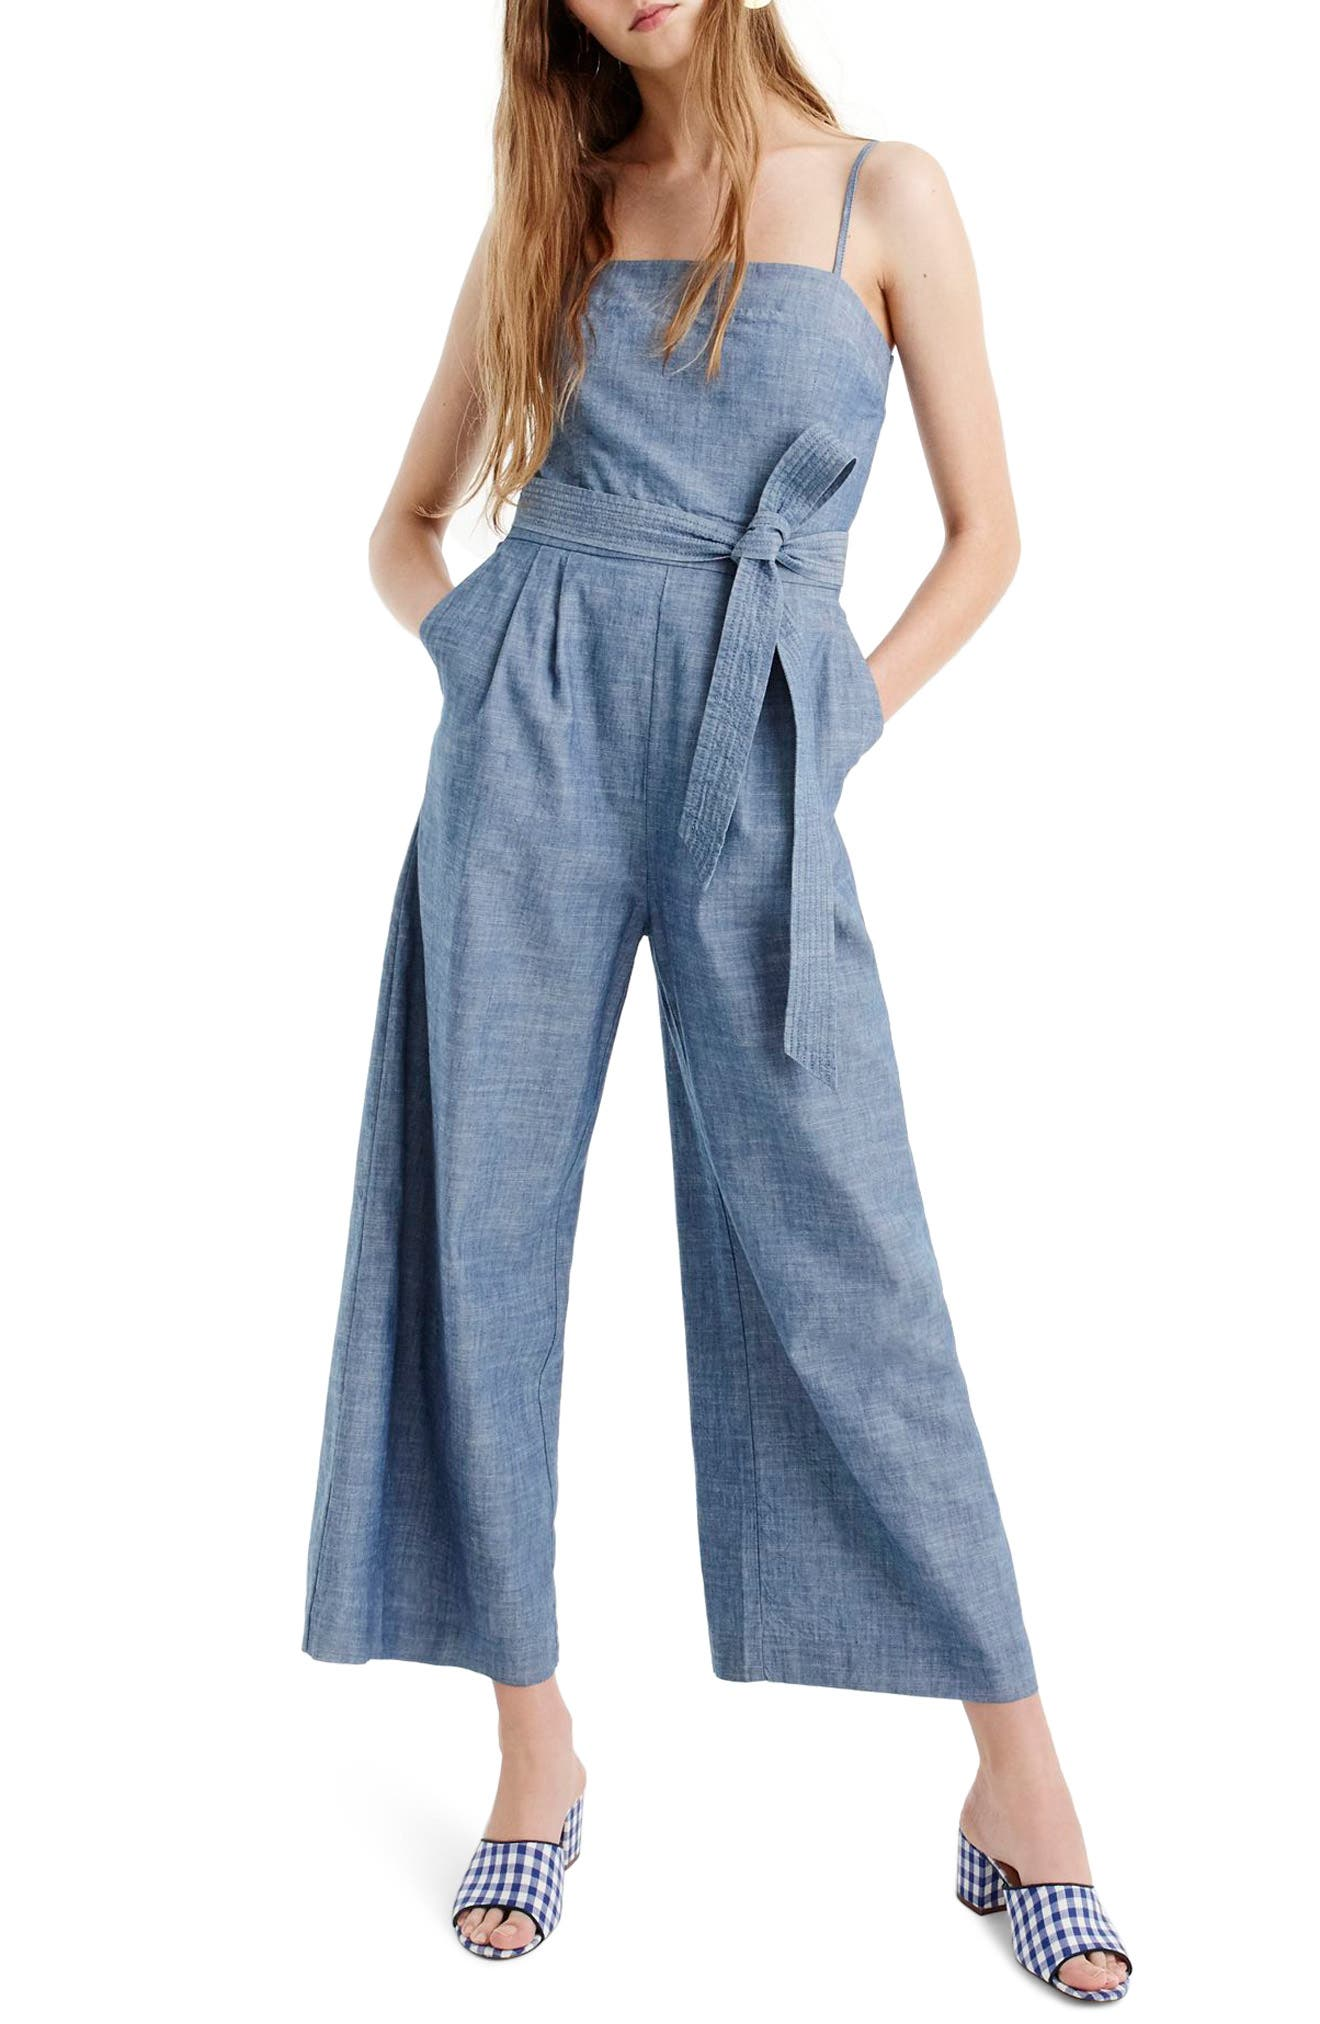 J.CREW, Marseille Cotton Chambray Jumpsuit, Main thumbnail 1, color, 400